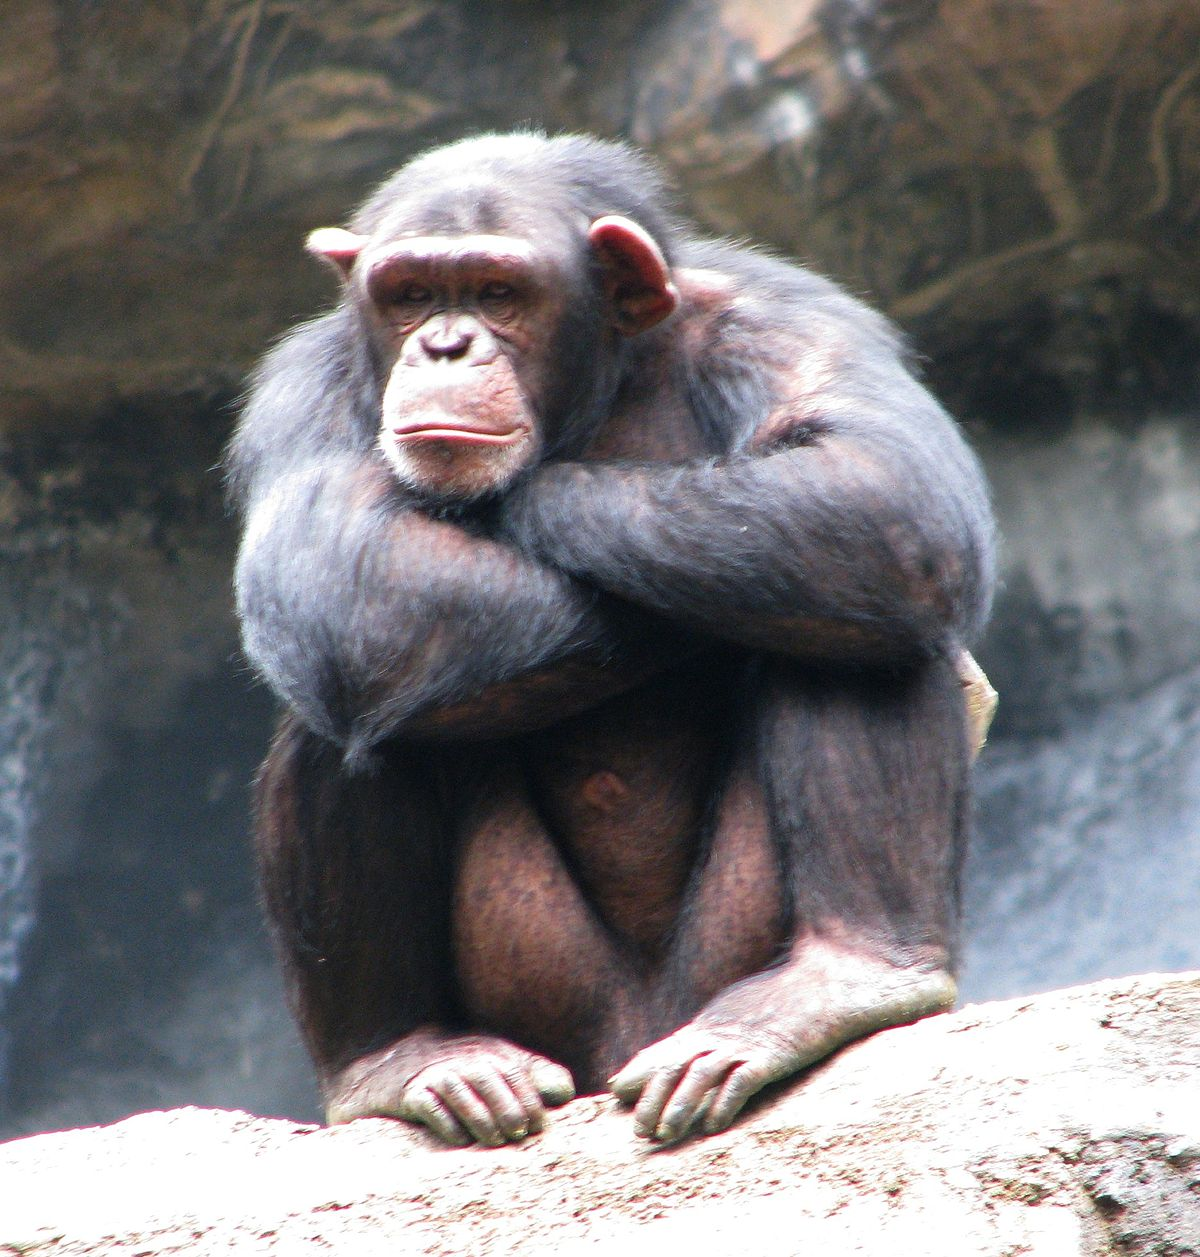 Bald chimpanzee pictures